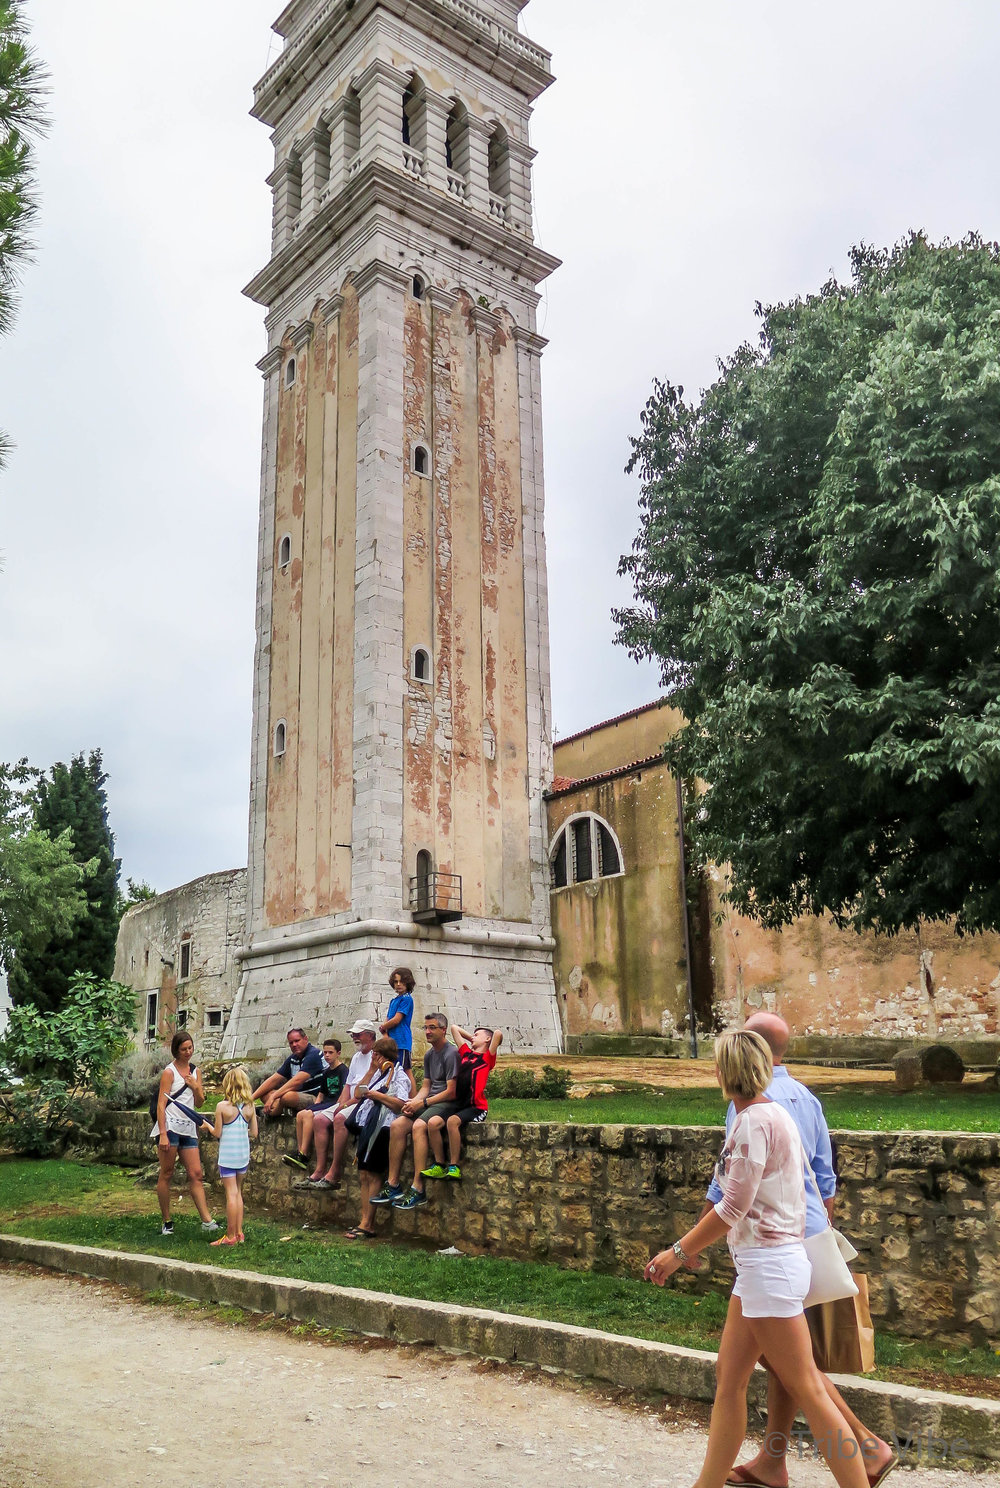 Croatia Road Trip. Dreamy Rovinj. Church of St. Euphemia bell tower